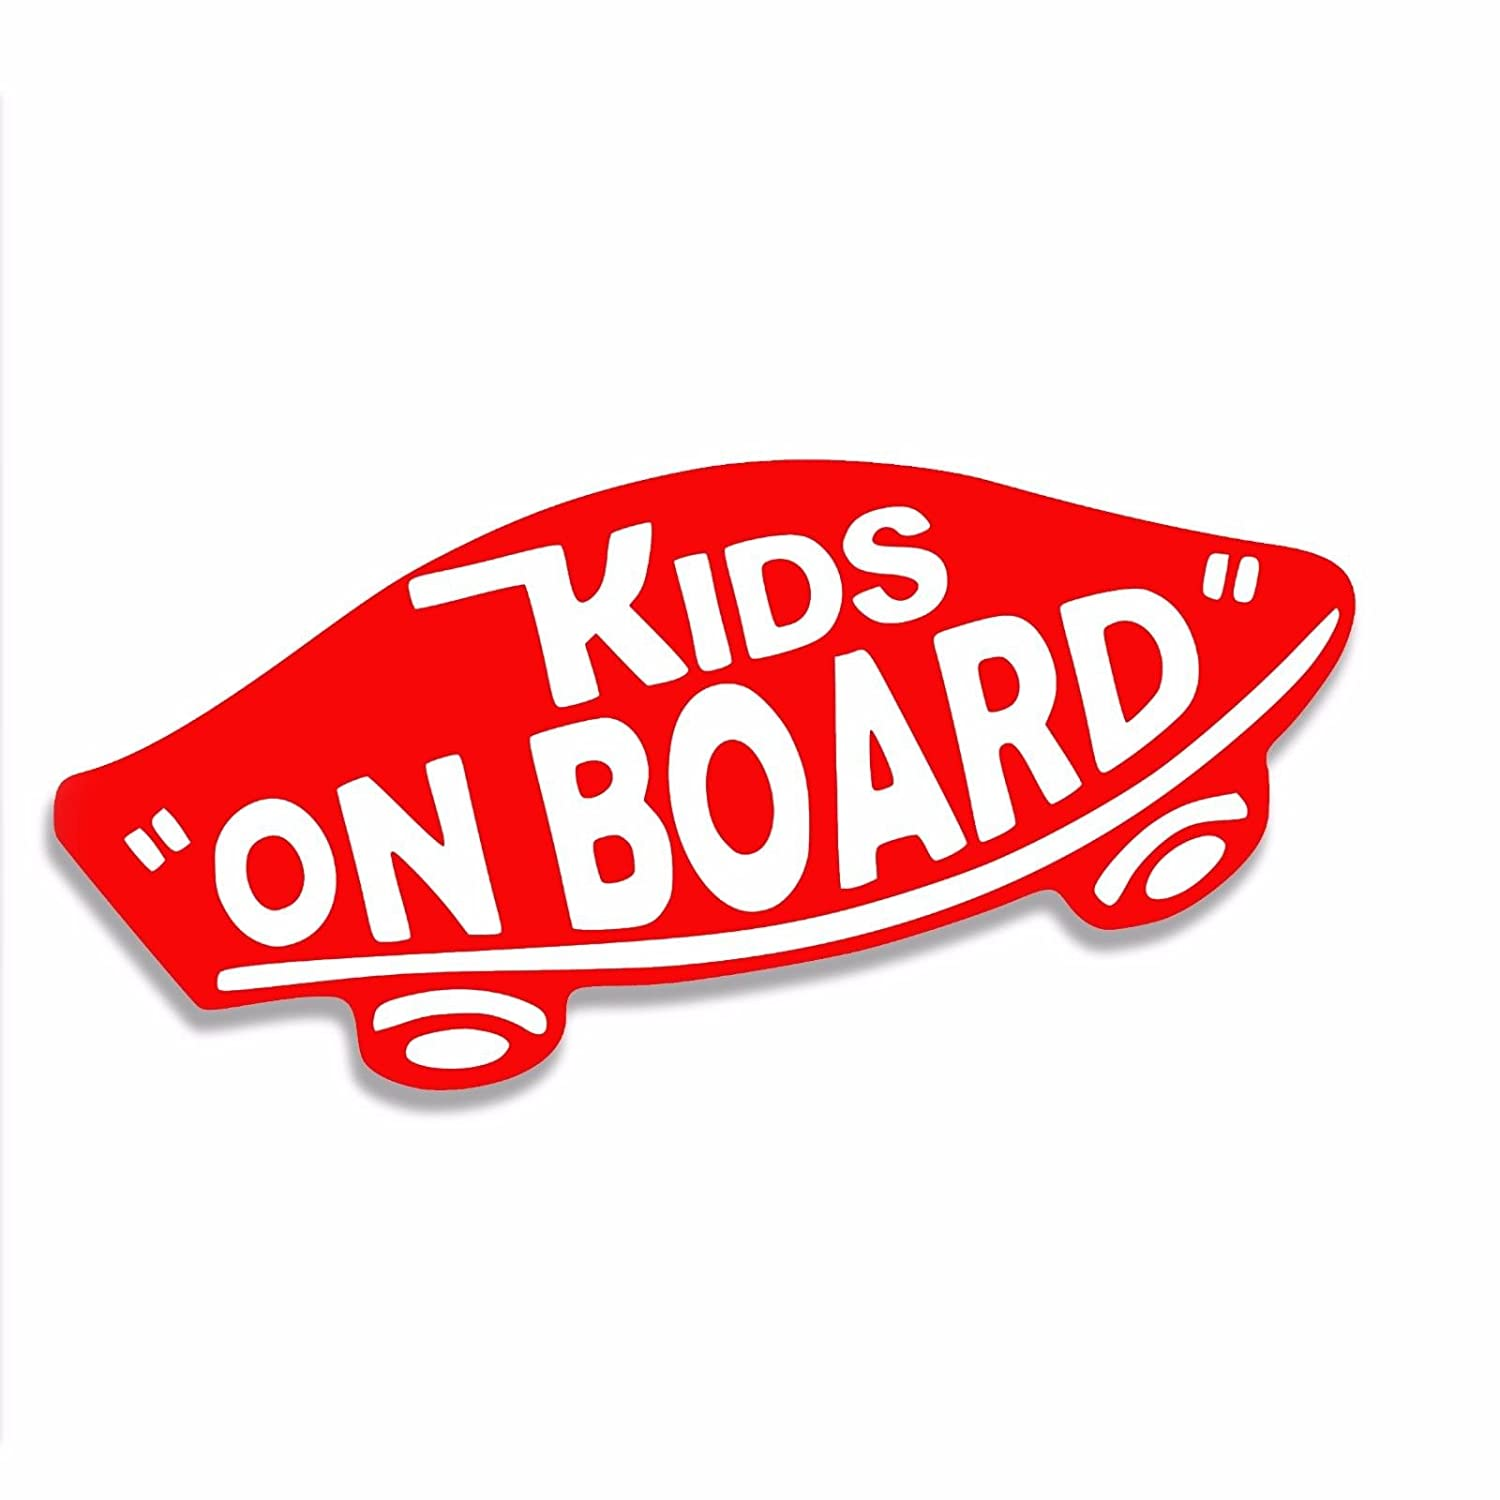 61dc27bab9a1a KIDS ON BOARD Vans Style Surf Skate Vinyl Decal Sticker Red